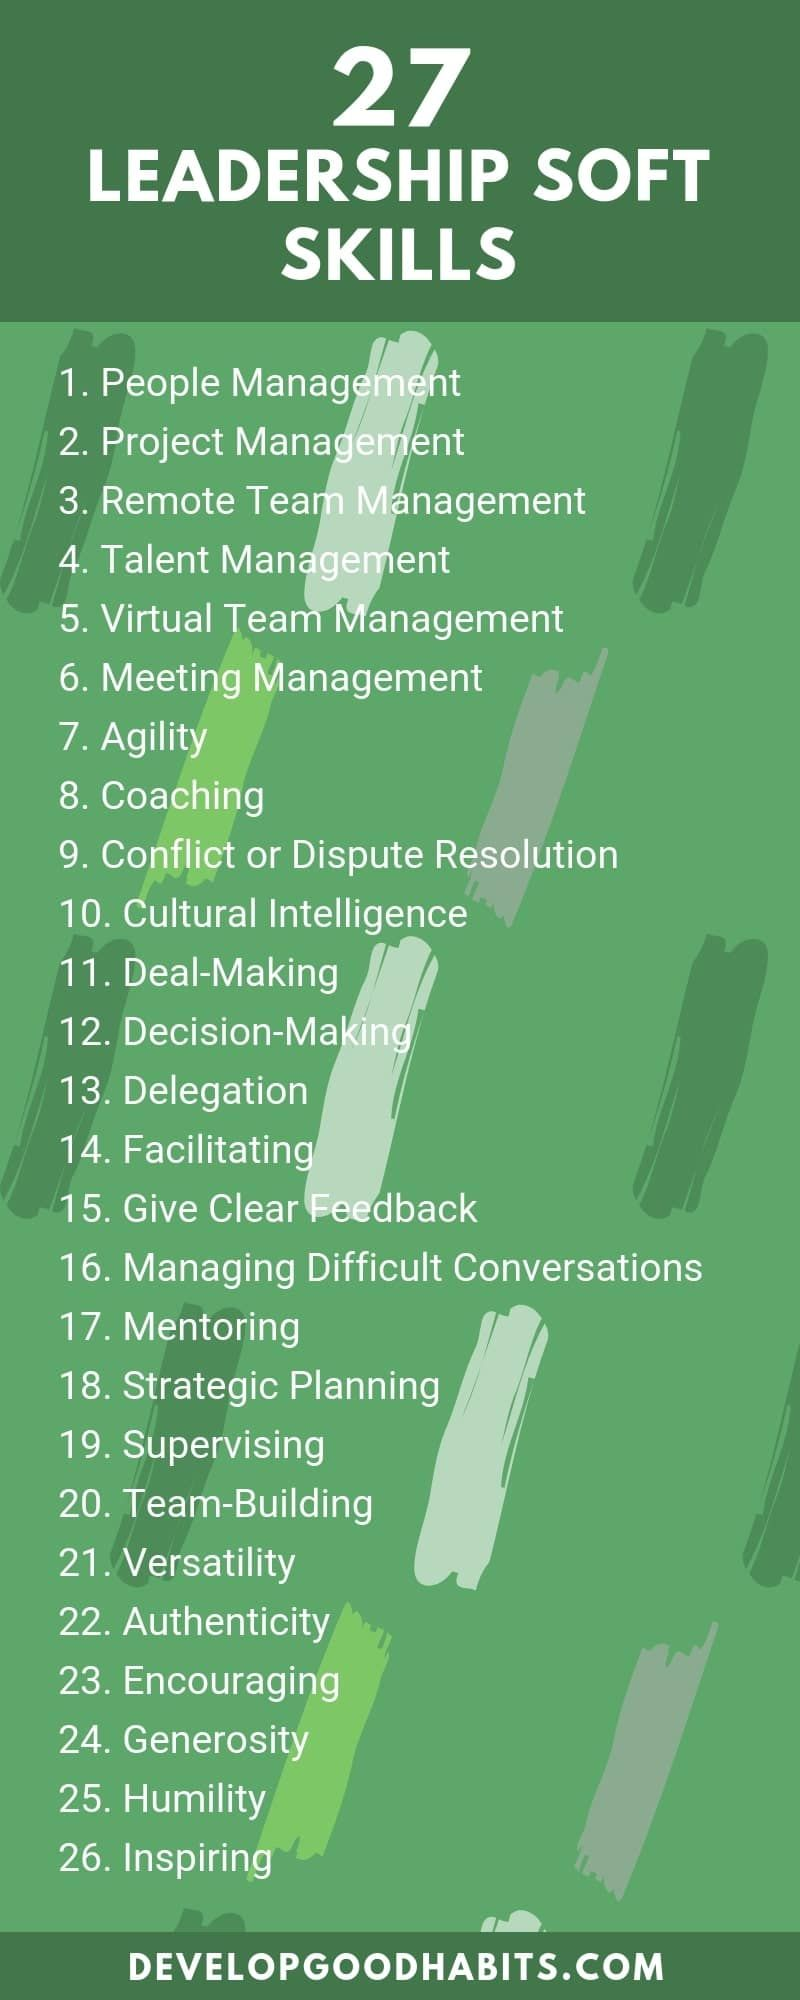 Good Skills to Put On A Job Application Of 135 soft Skills List to Stand Out On A Resume or Job Application